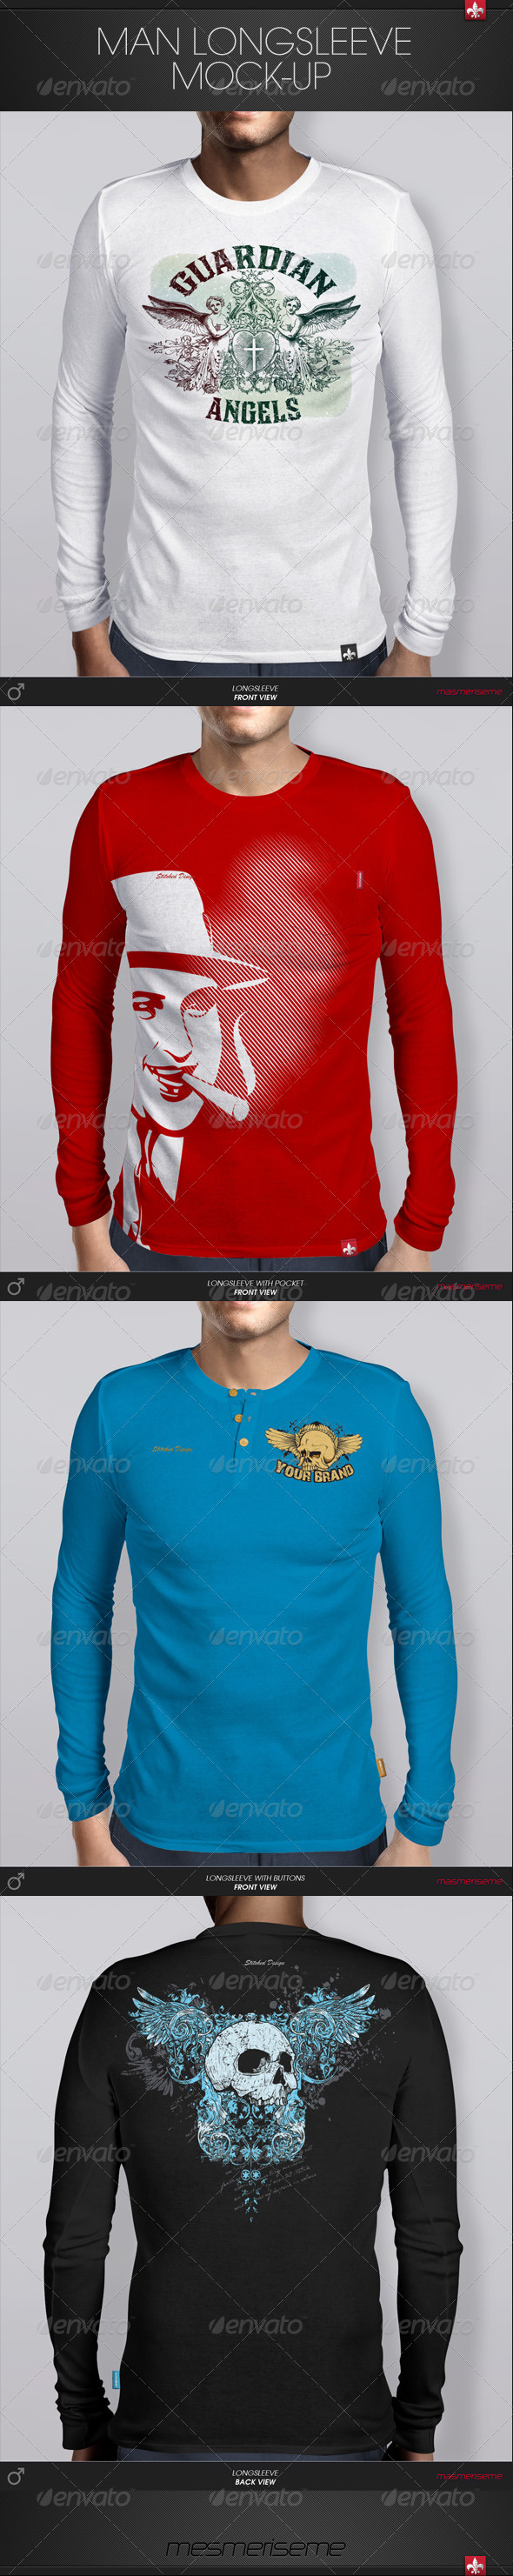 GraphicRiver Man Longsleeve Mock-up 6029241